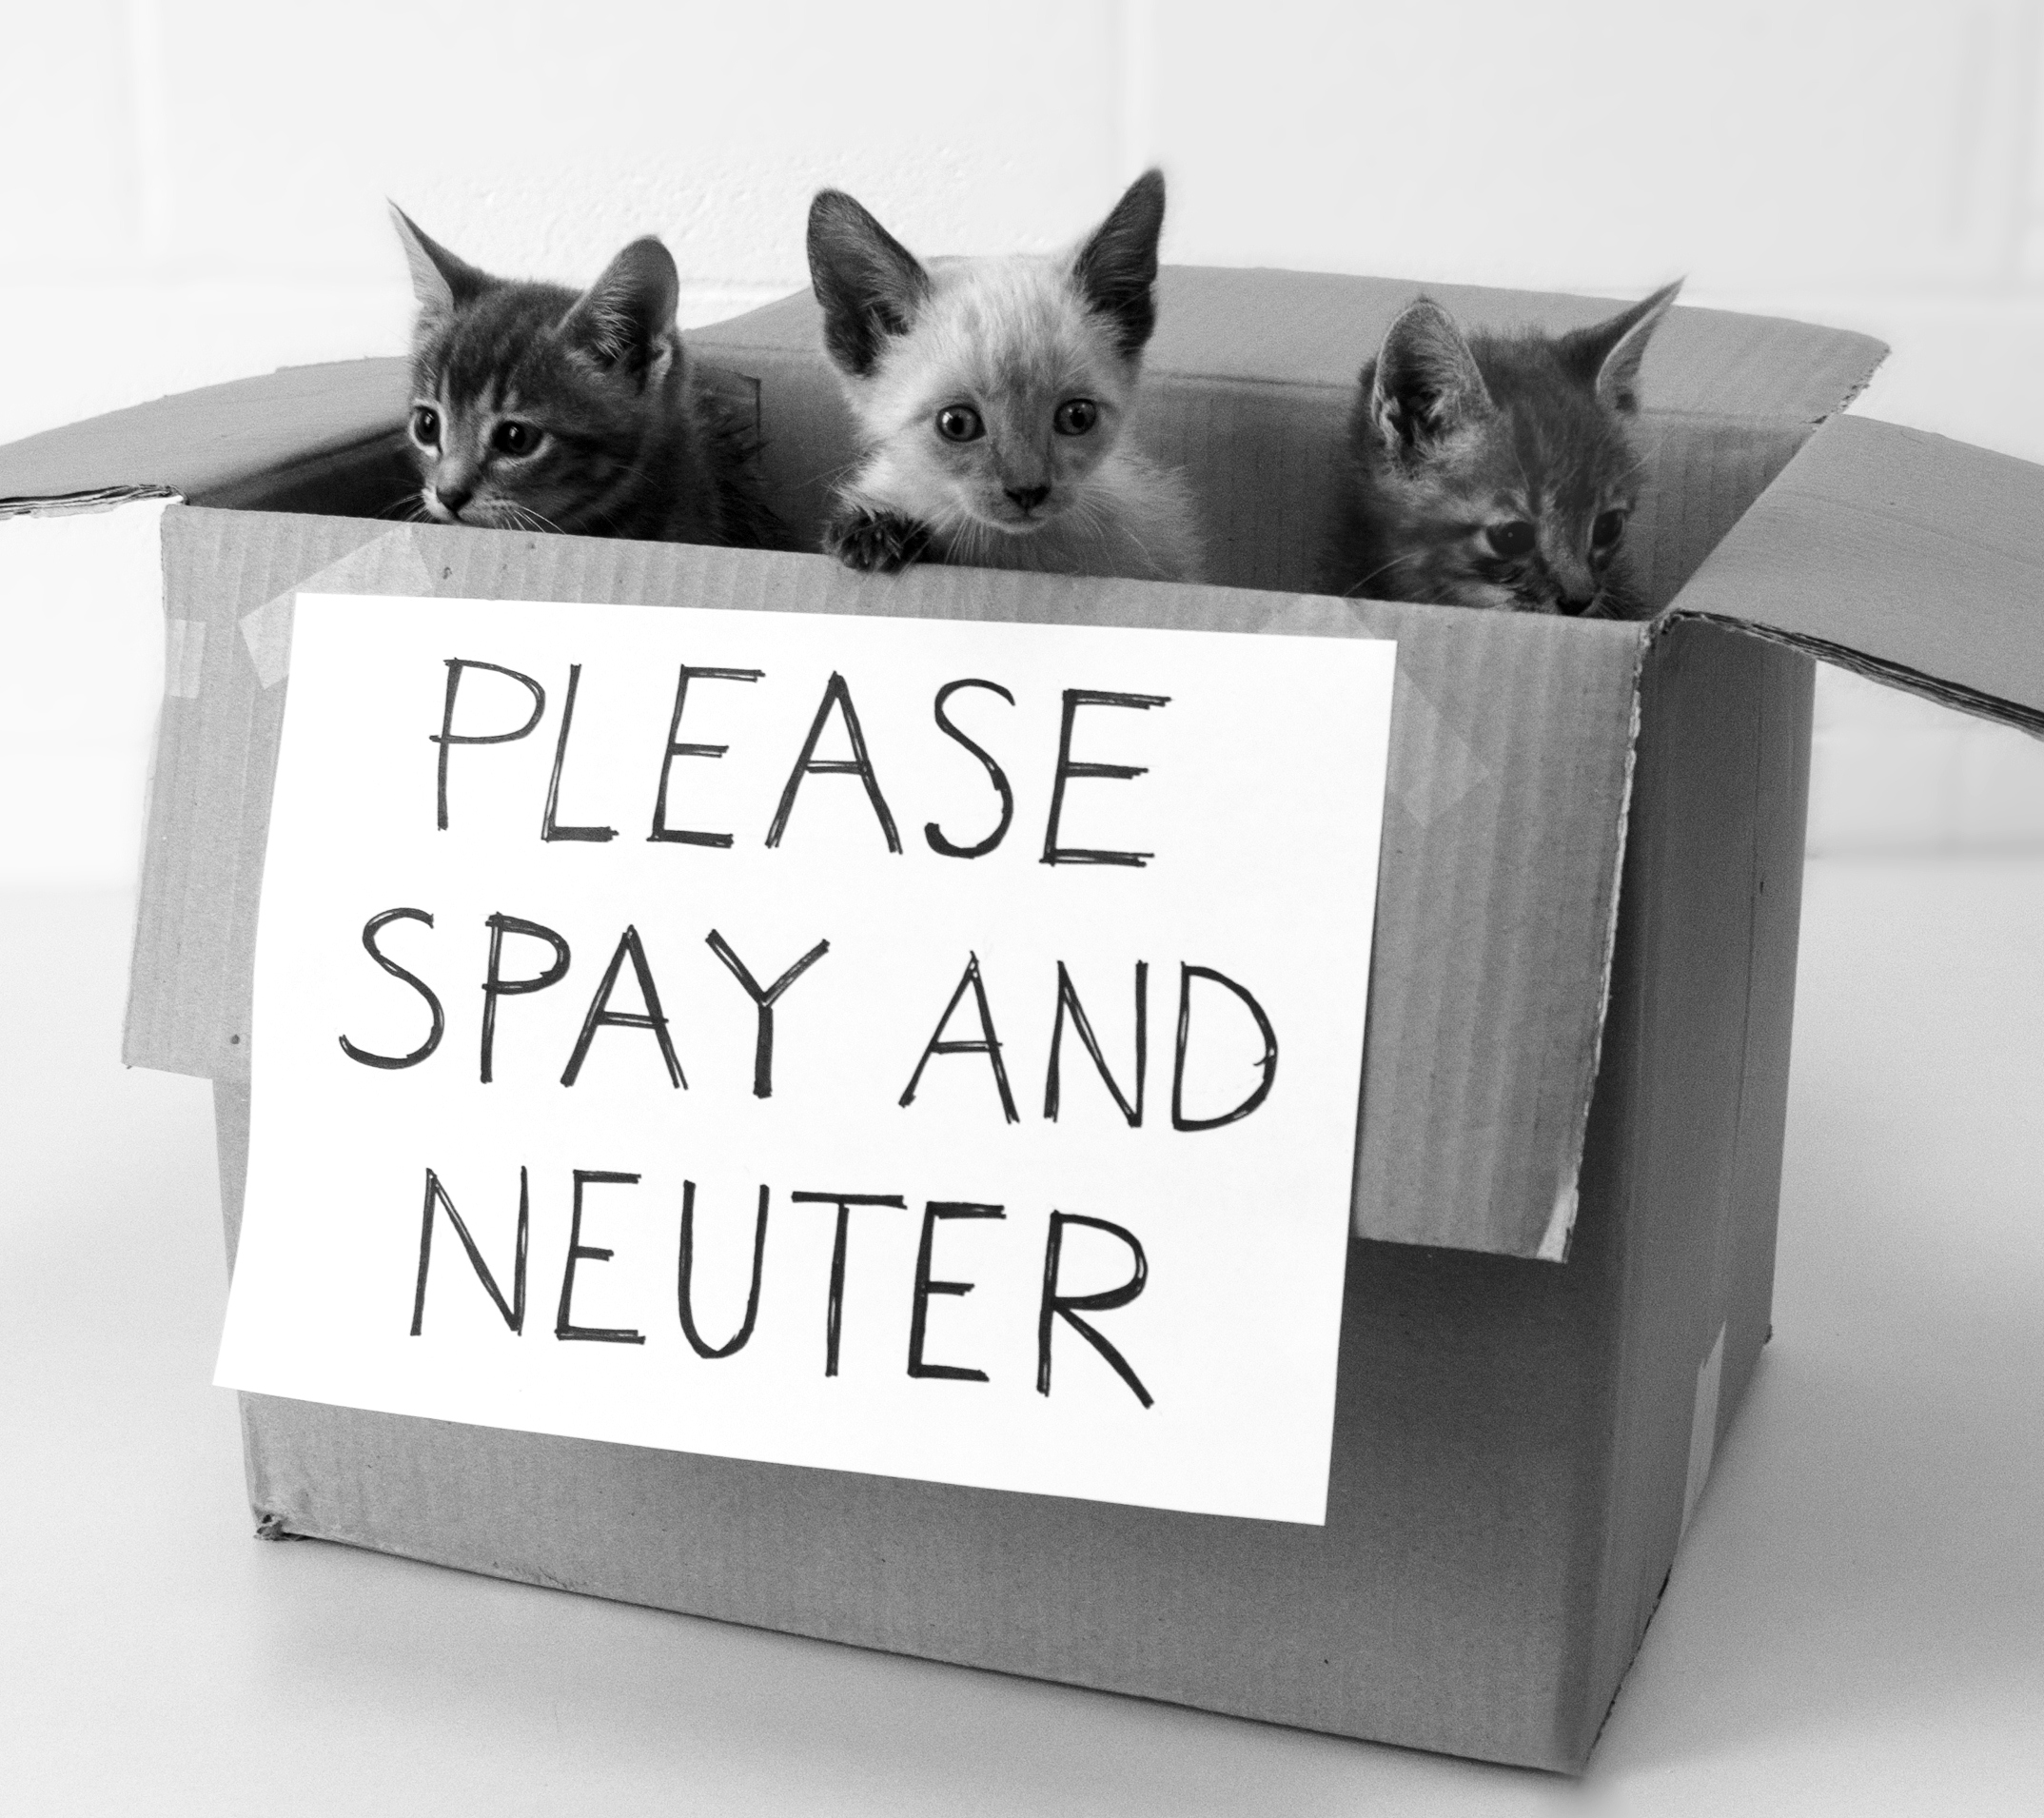 spay neutering your pets Spay and neuter your pets good for you, your pet, and the community prevent a litter - it's good for you spayed and neutered pets are better, more affectionate, companions neutered cats are less likely to spray and mark territory spaying a female dog or cat eliminates its heat cycle, which can last twenty-one days, twice a year, in dogs, and anywhere from three to fifteen days.